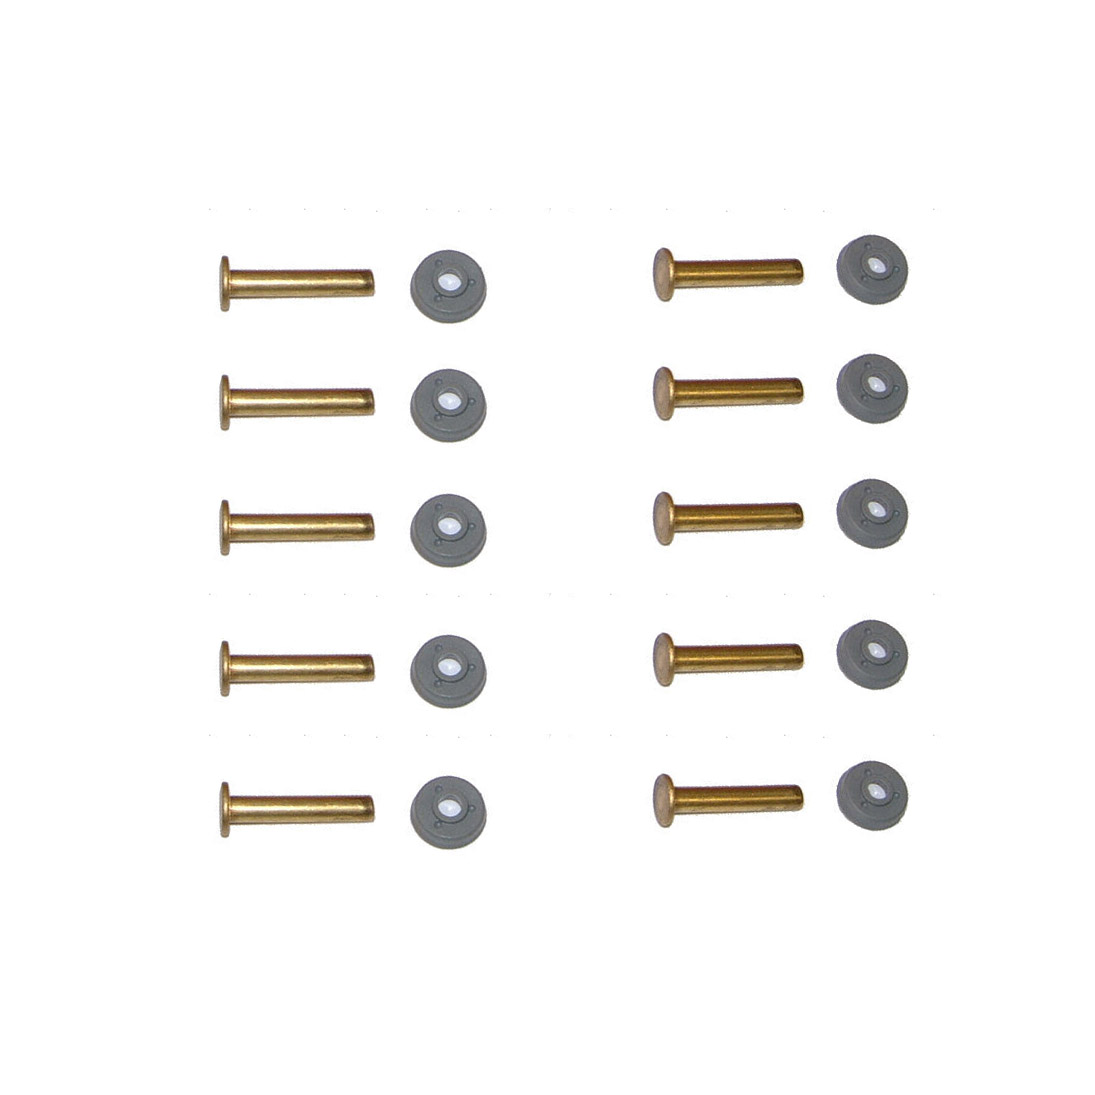 K6 WINDOW RIVETS X 10 INCLUDING RIVET CLIPS